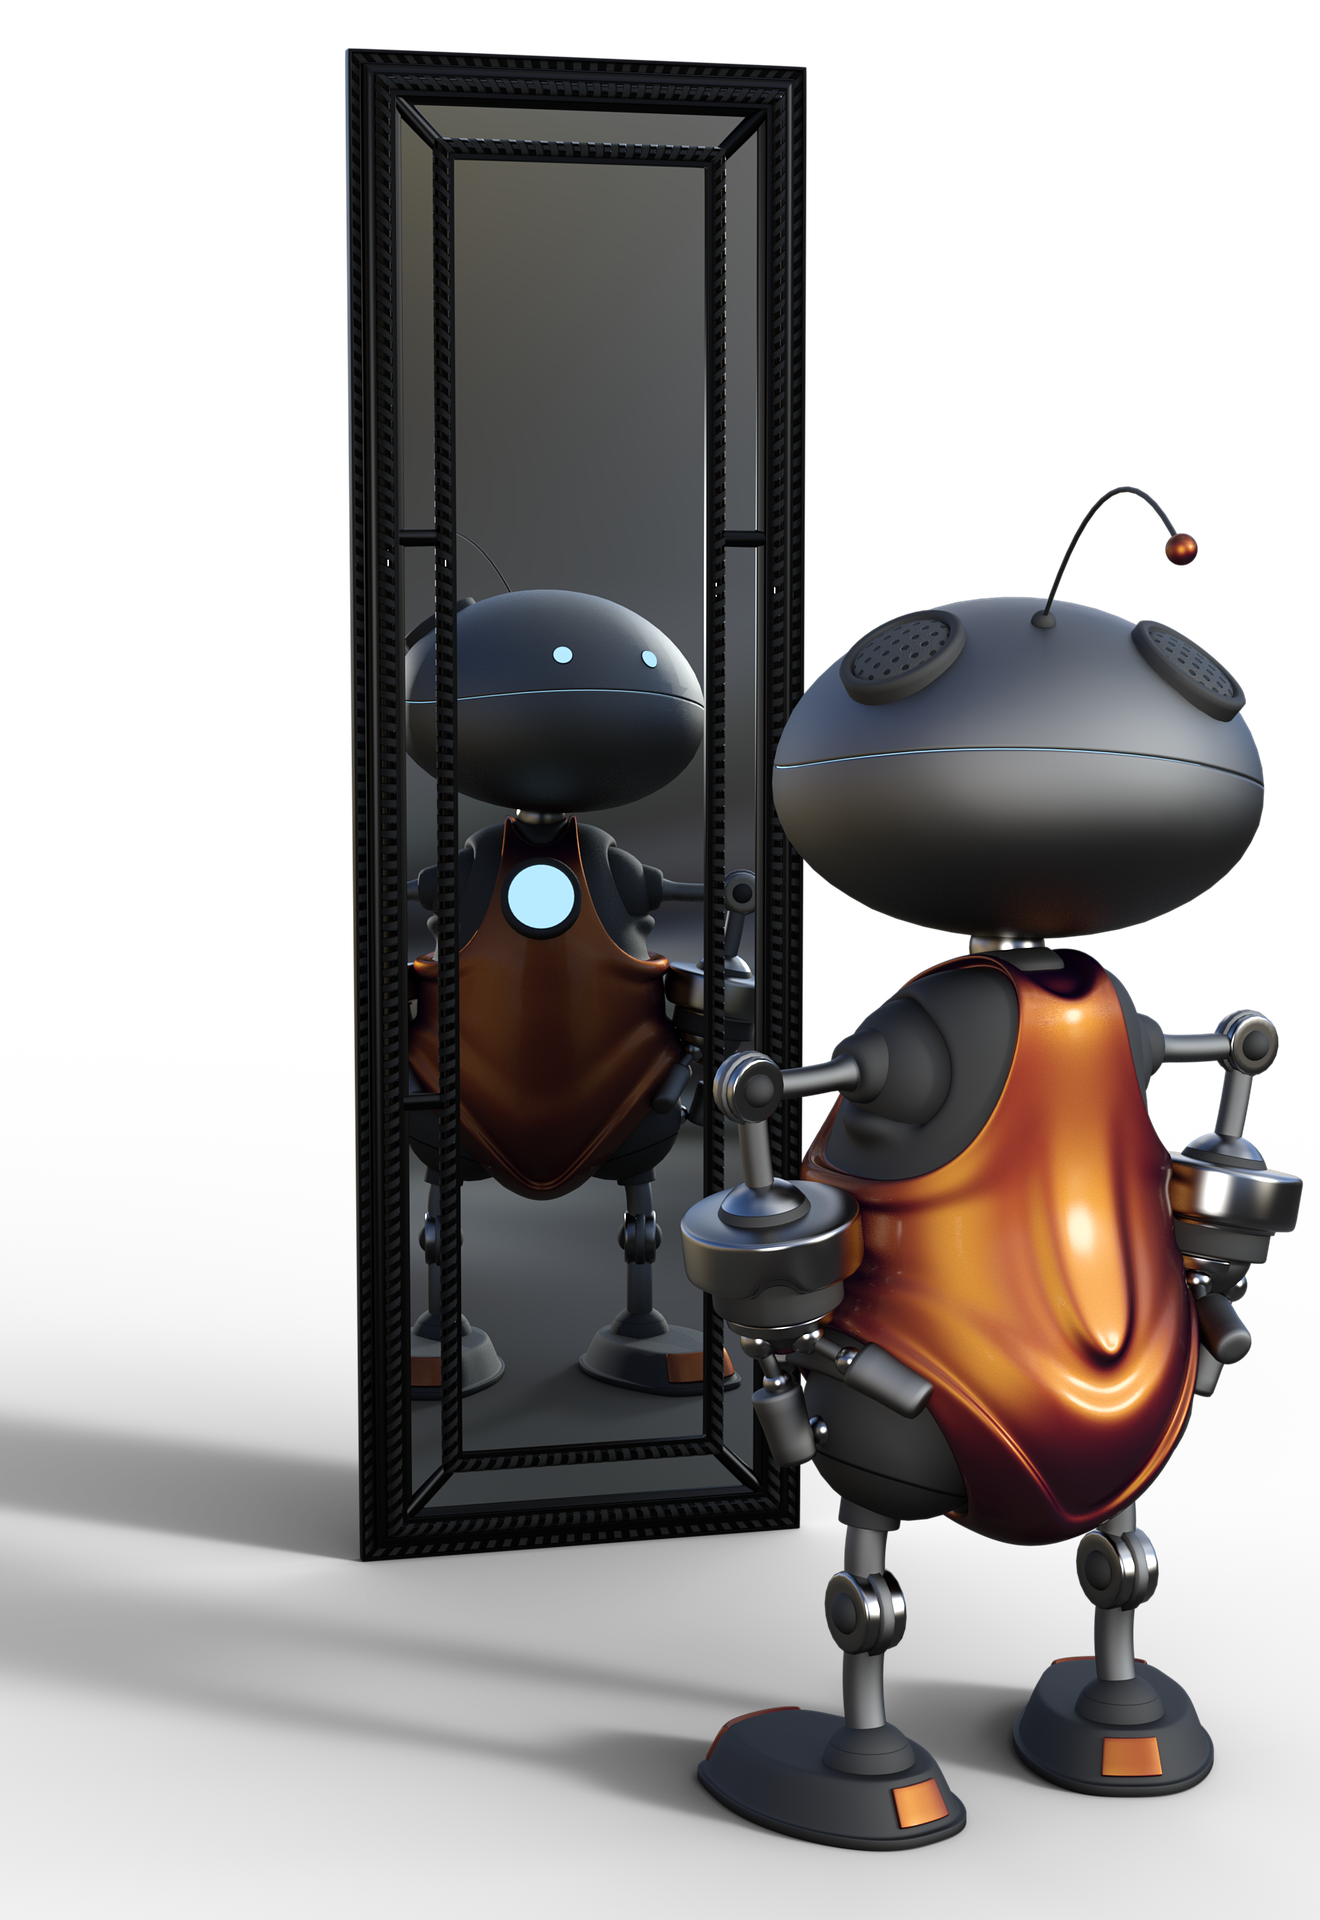 image of a robot looking at itself in a mirror